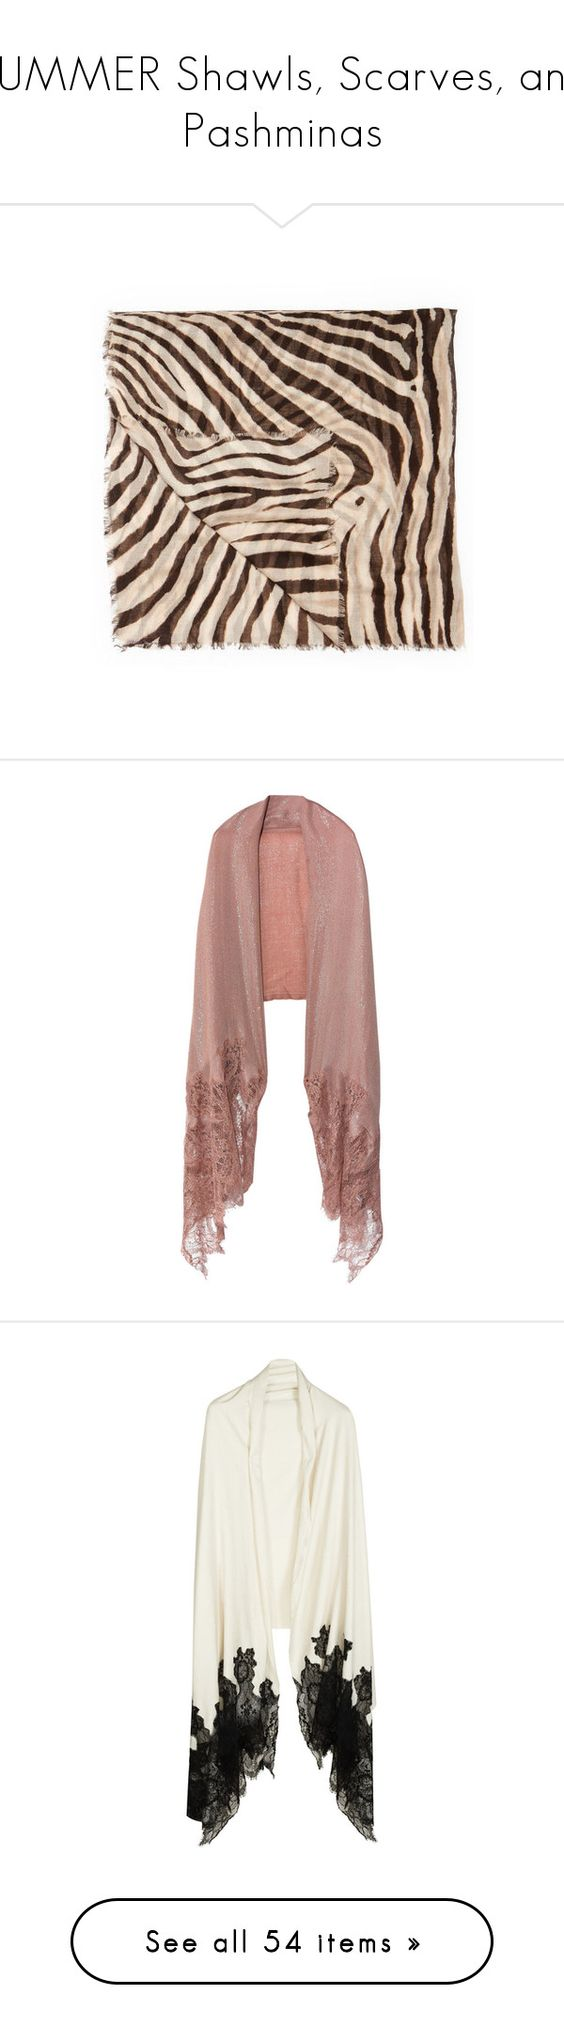 """SUMMER Shawls, Scarves, and Pashminas"" by carolinarcieri ❤ liked on Polyvore featuring accessories, scarves, zebra scarves, ralph lauren shawl, ralph lauren scarves, lightweight scarves, ralph lauren, outerwear, shawl and hats gloves & scarves"